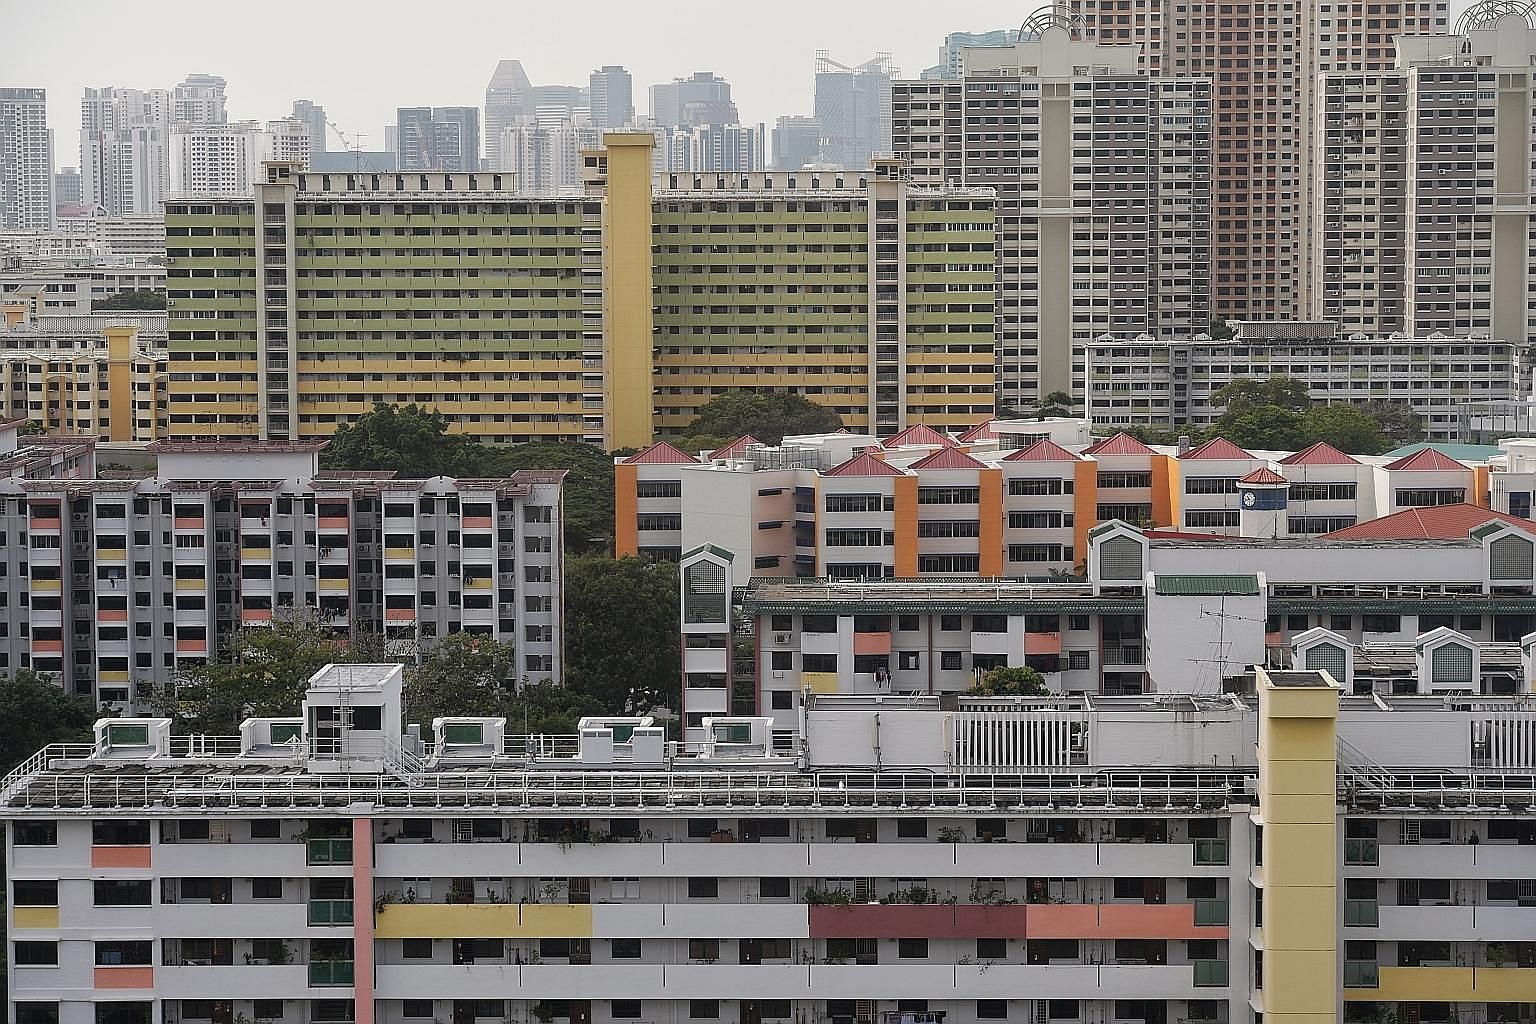 Flash estimates from real estate portal SRX showed that 1,668 HDB resale flats were sold last month, 13.1 per cent fewer than in January. The figure reversed the 3.3 per cent increase in January from the preceding month.